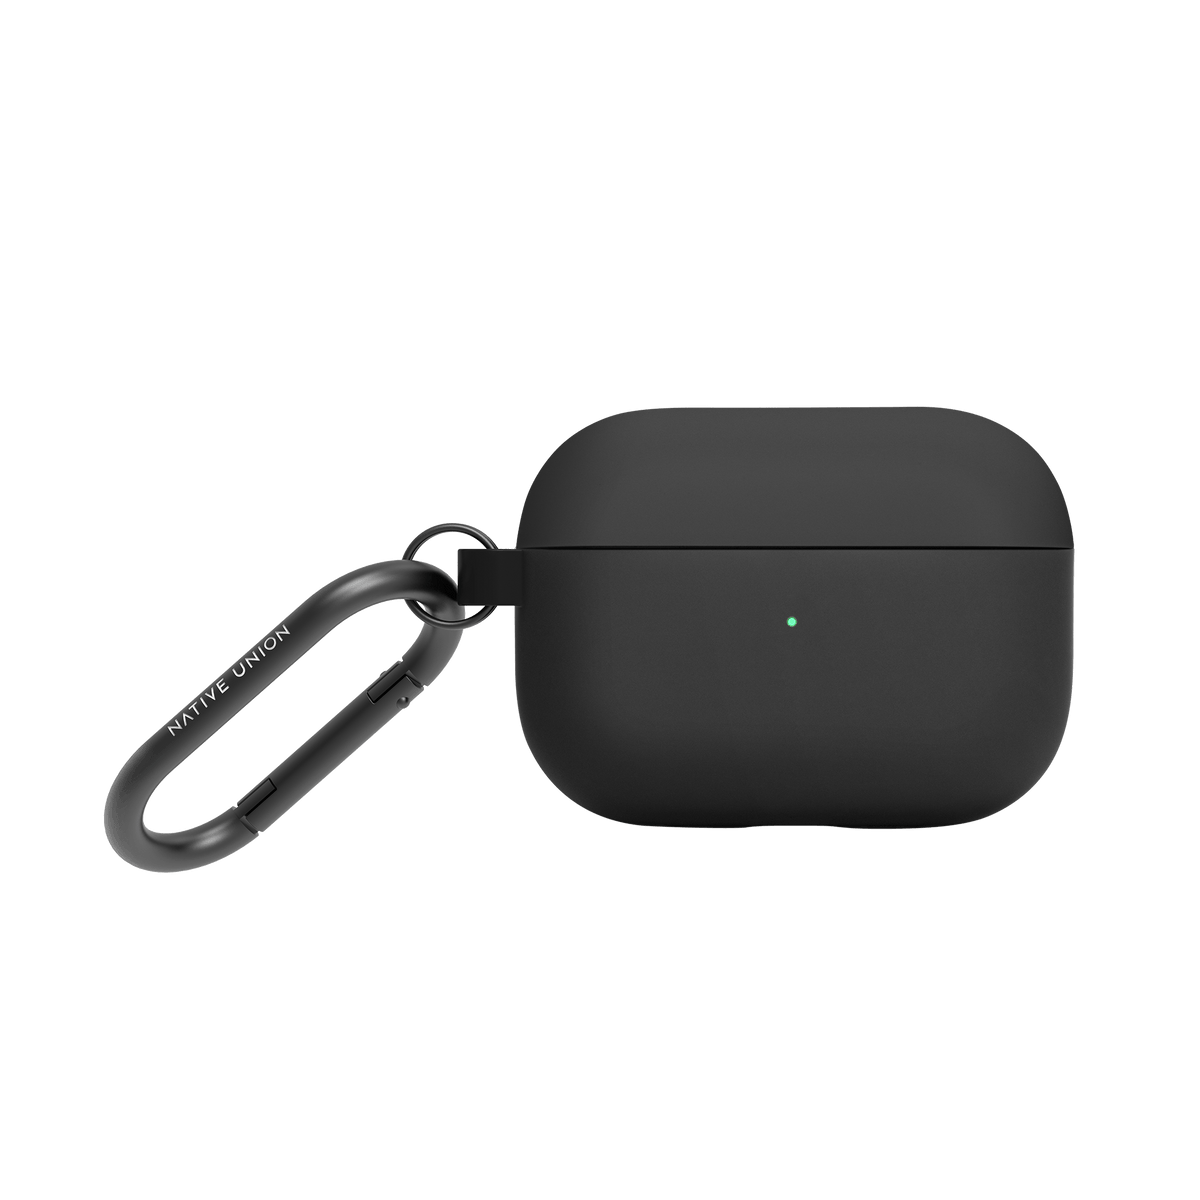 Roam Case for Airpods Pro - Black